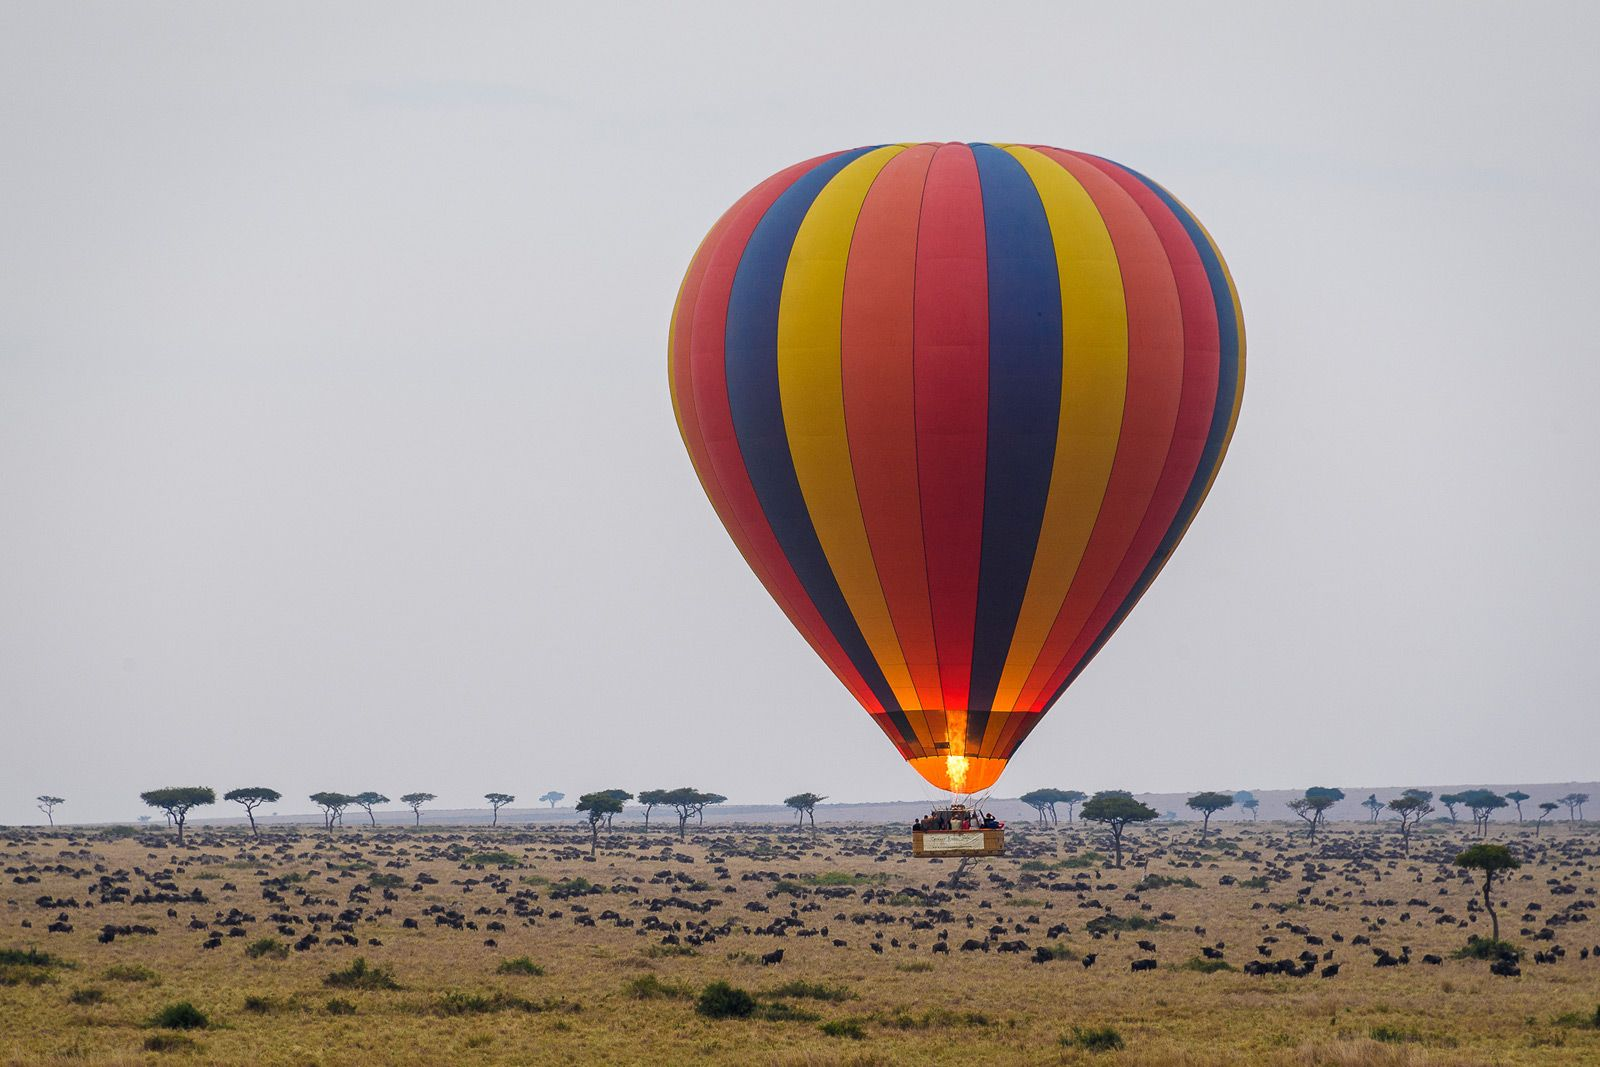 Mara Luxury Hot Air Balloon Safari